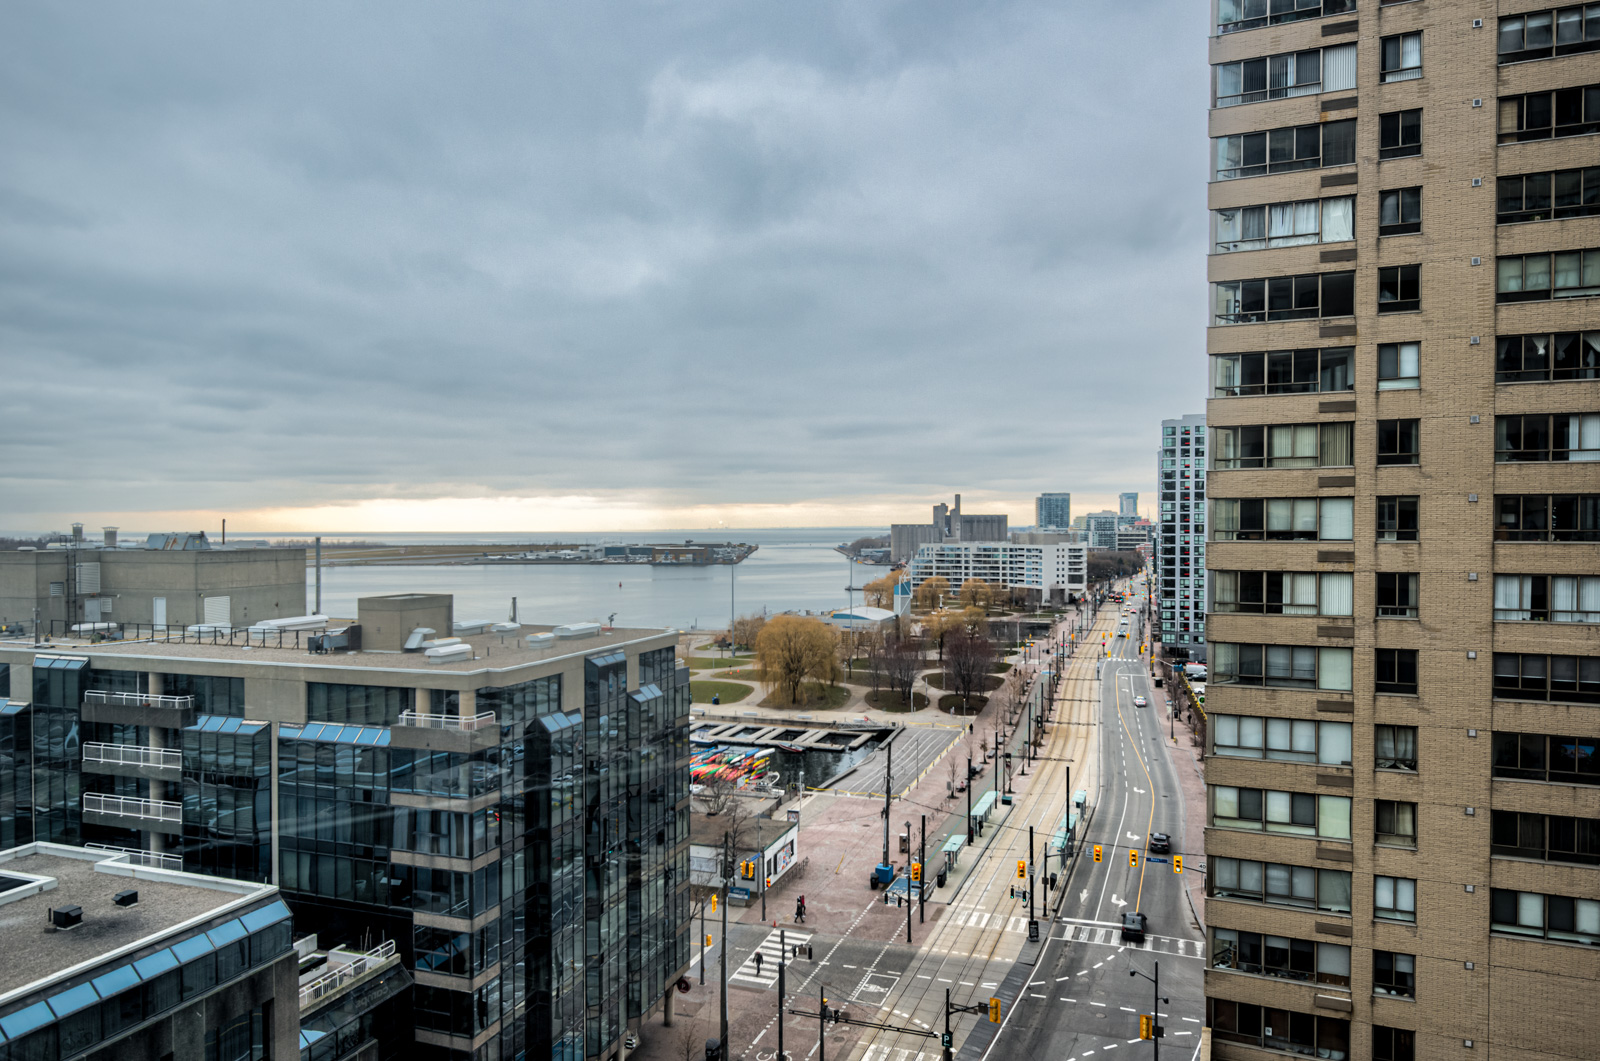 Balcony view of Lake Ontario, buildings, streets, cars and Billy Bishop Airport in distance.